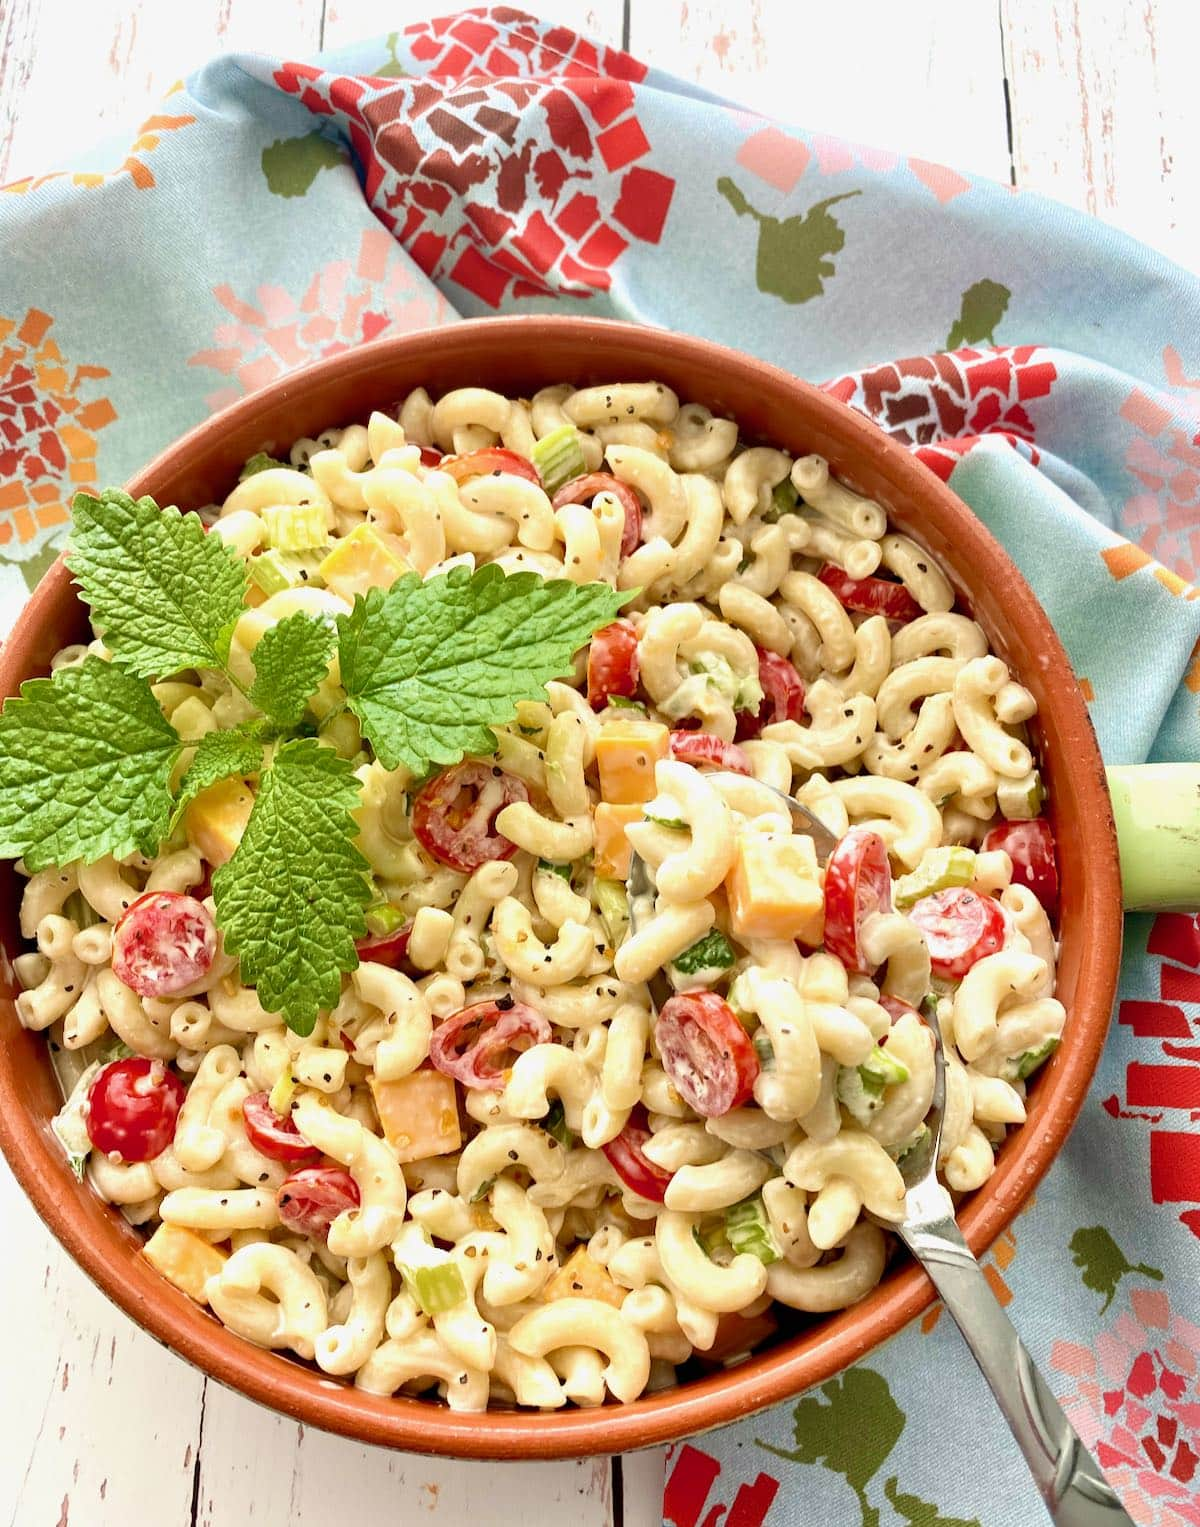 spoon lifting up macaroni salad out of a crock.